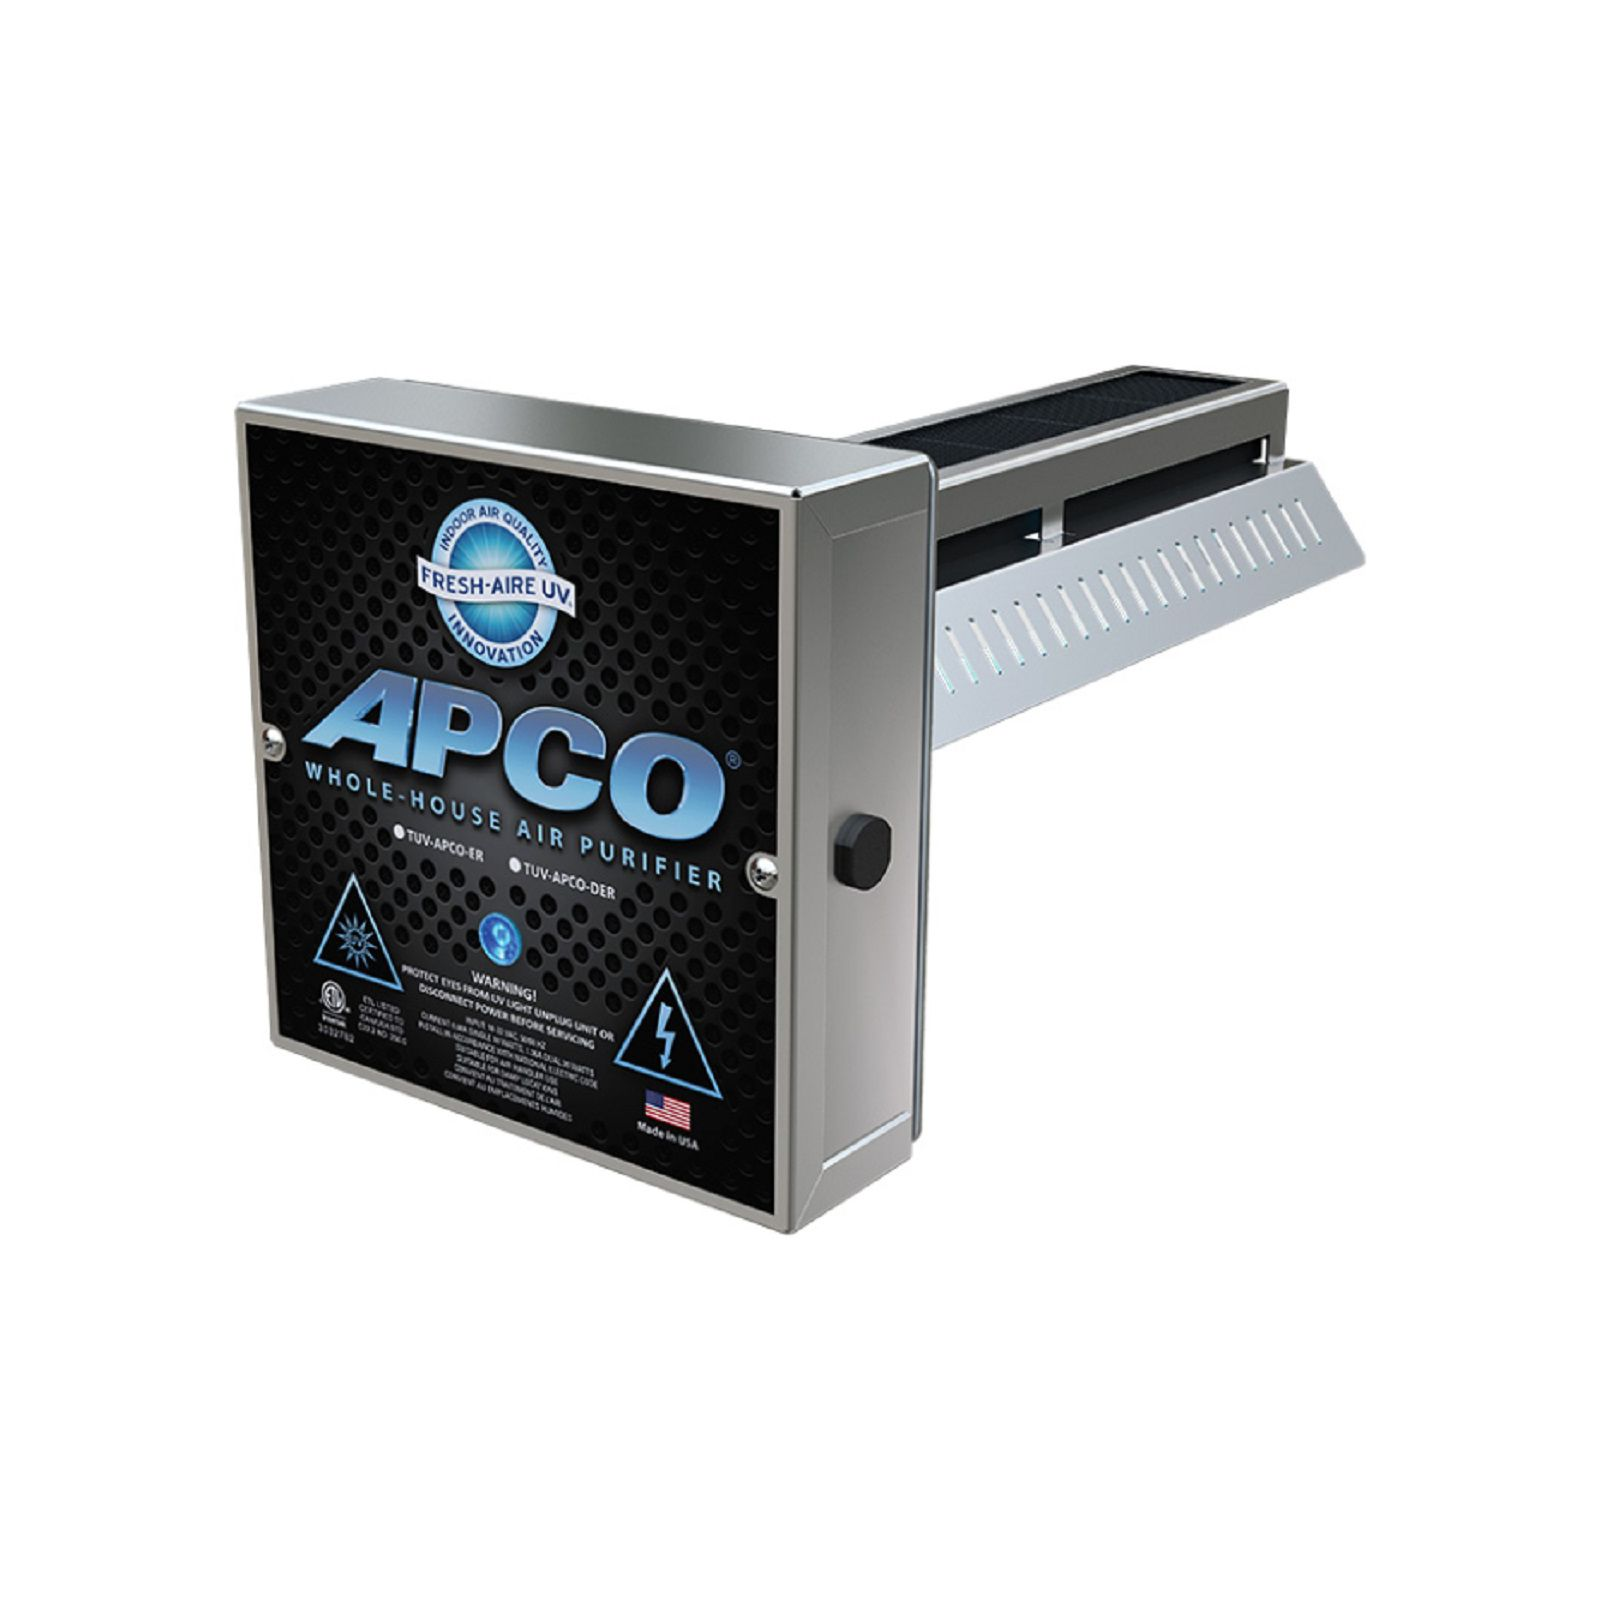 Triatomic TUV-APCO-DI2 - Two Year Lamp, with 2nd Remote Lamp (110-277 VAC series) APCO In-Duct